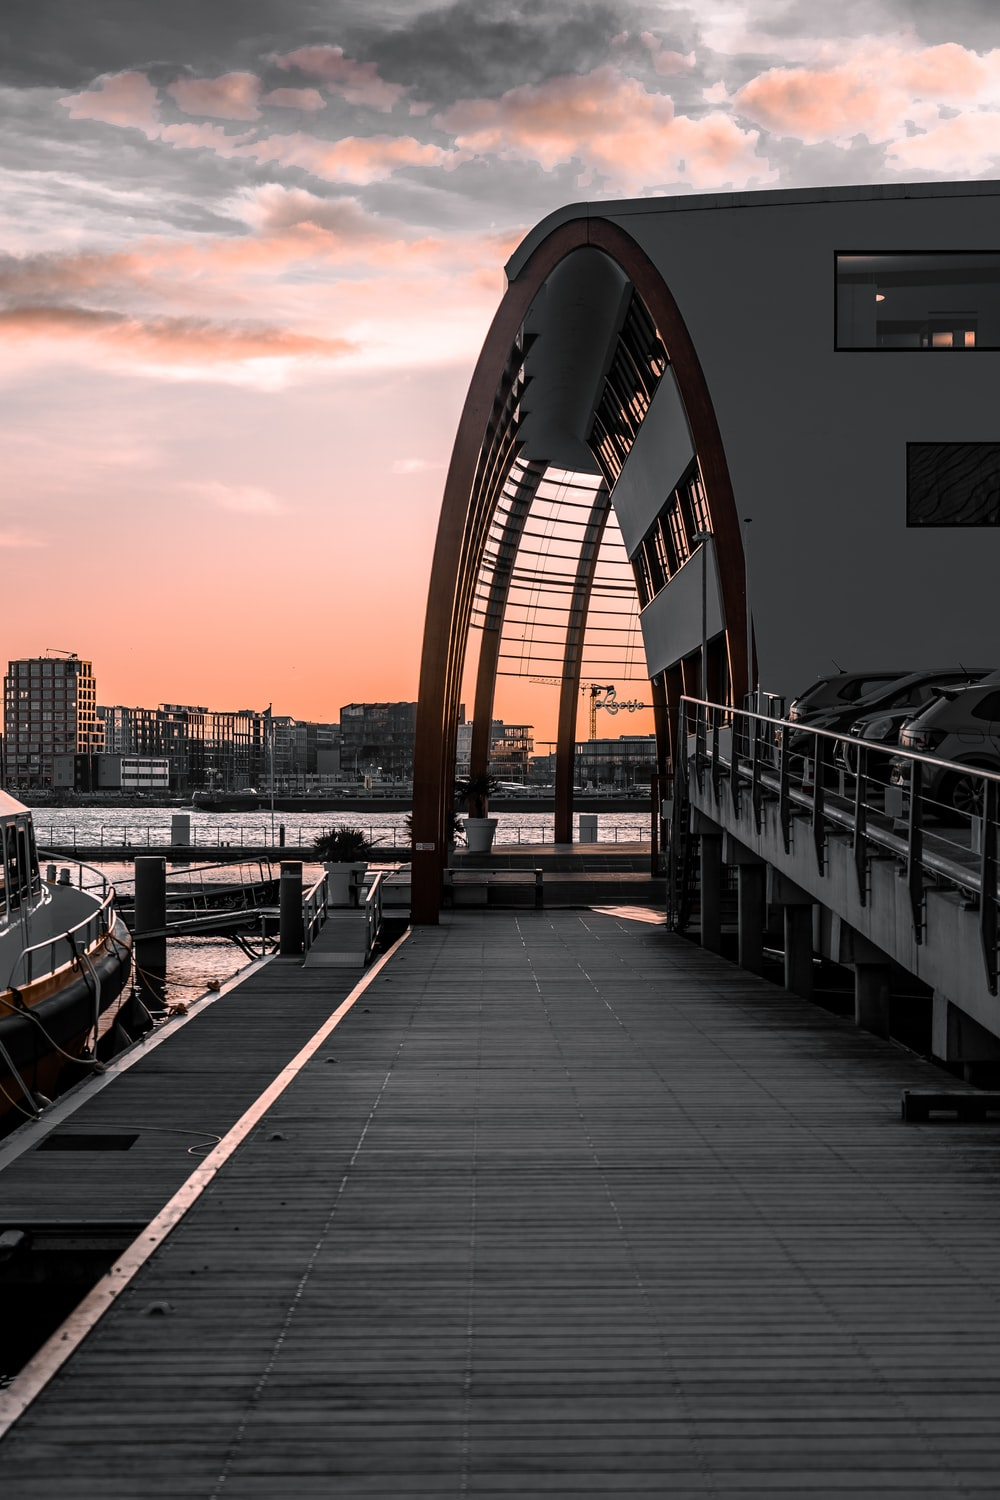 white and black boat on dock during sunset